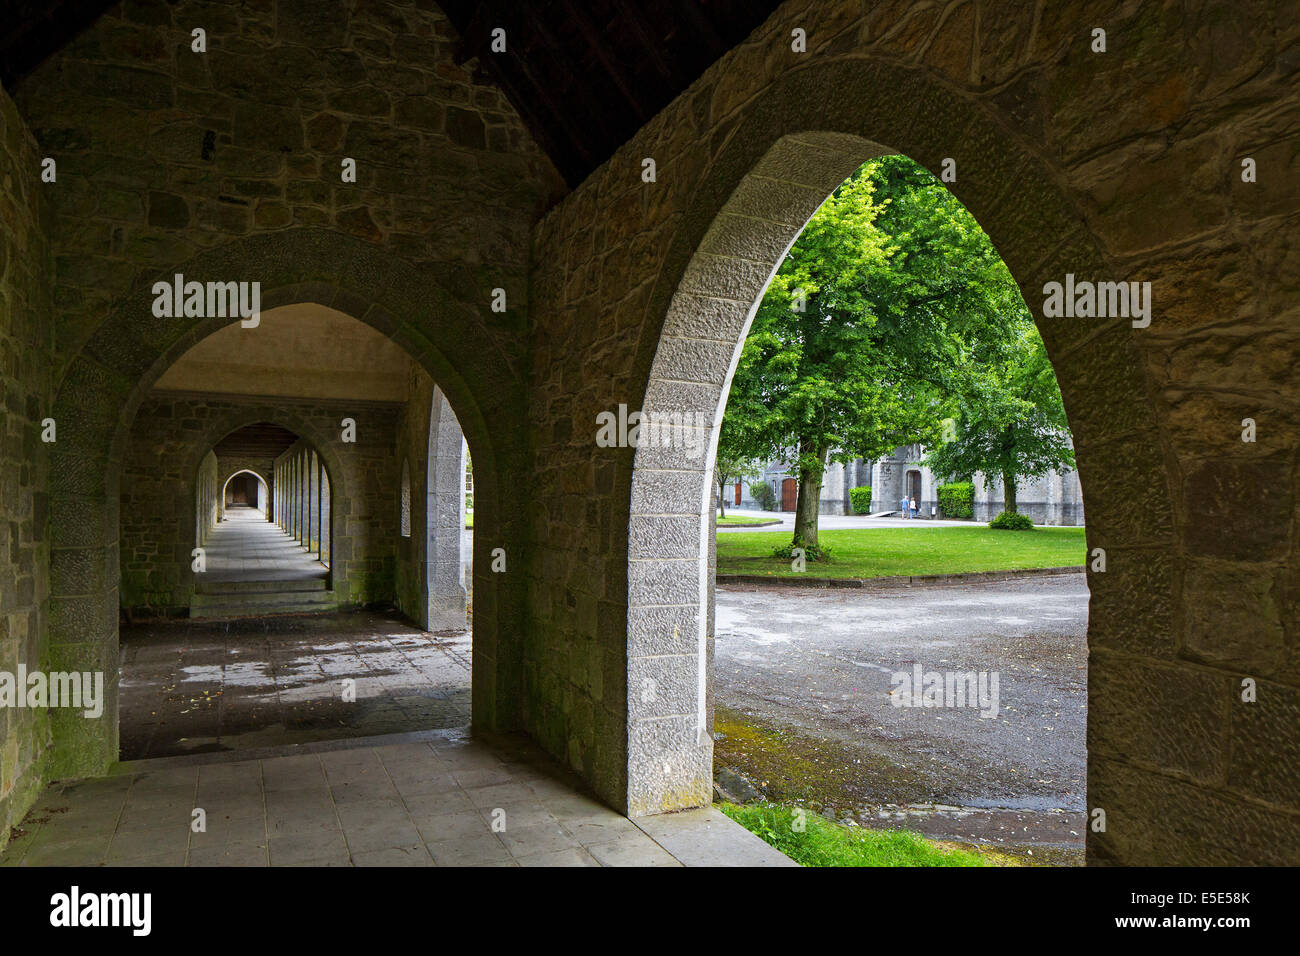 Cloister of the Maredsous Abbey, a Benedictine monastery at Denée, Belgium - Stock Image